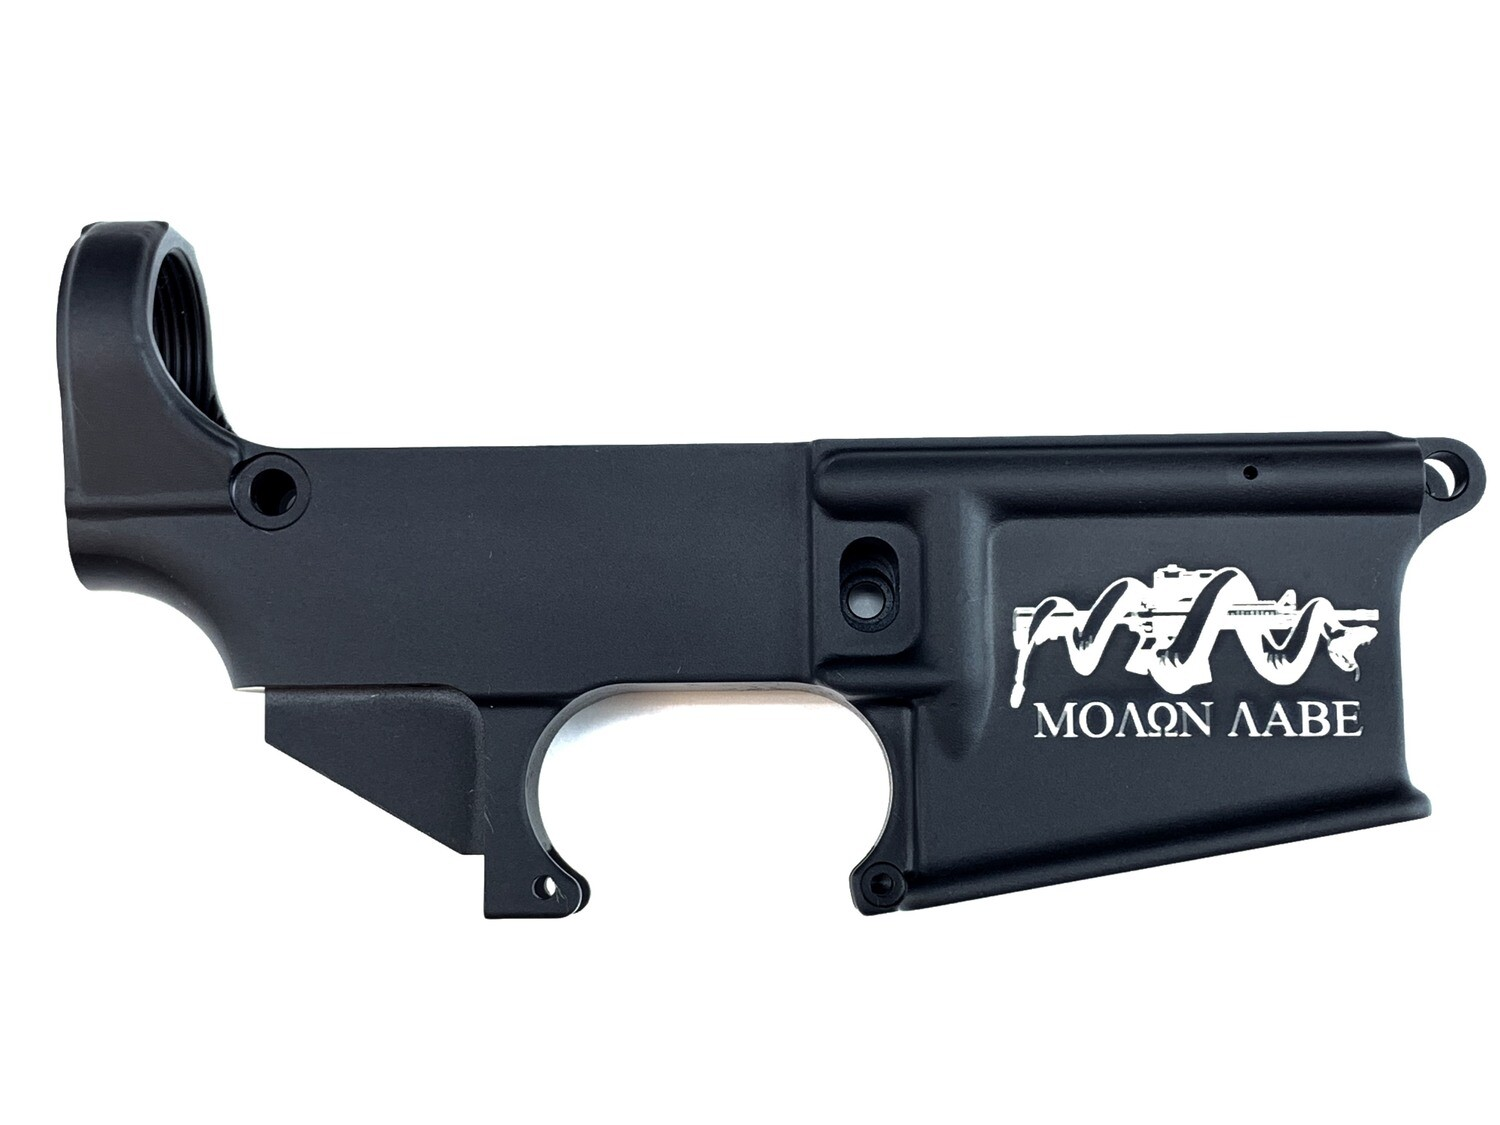 """AR-15 80% """"Molon Labe Snake"""" Lower Receiver - Black Anodized Forged 5.56/.223"""